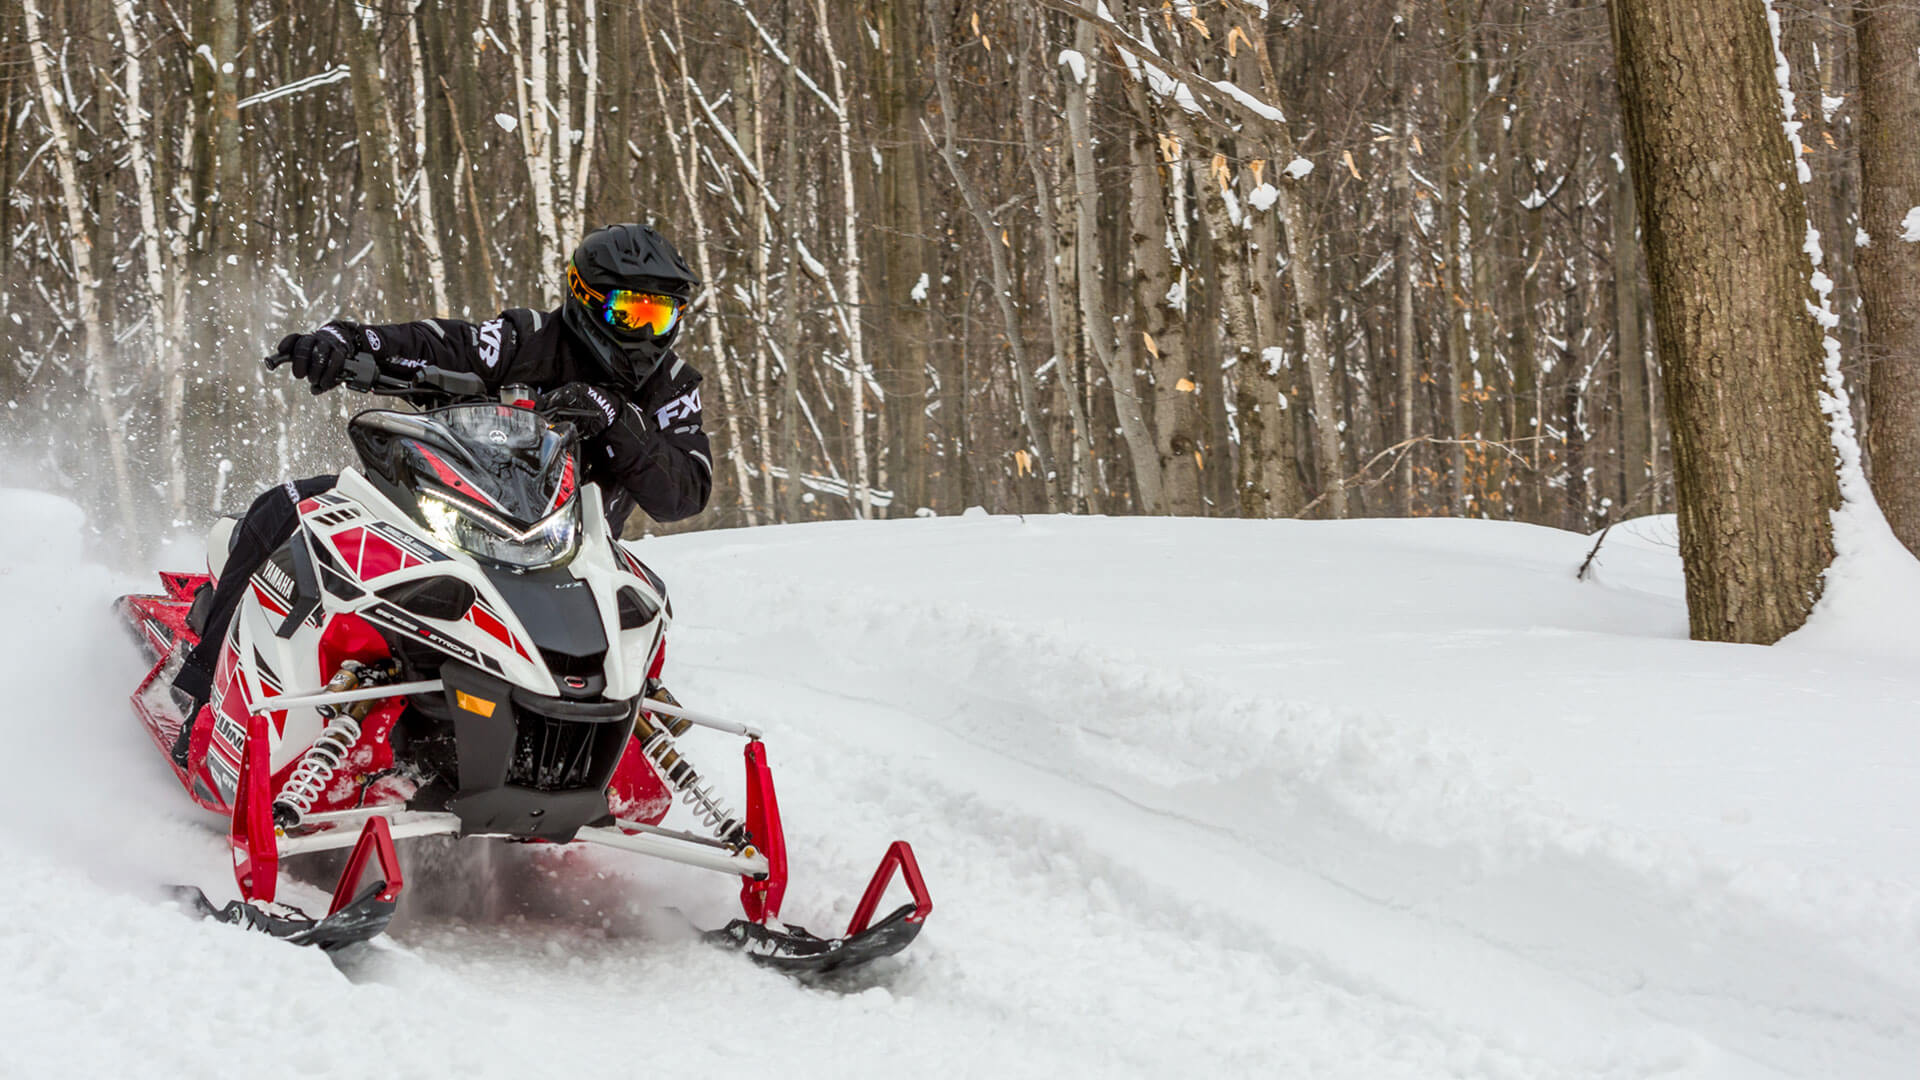 A snowmobile image, one of a series of rotating background images